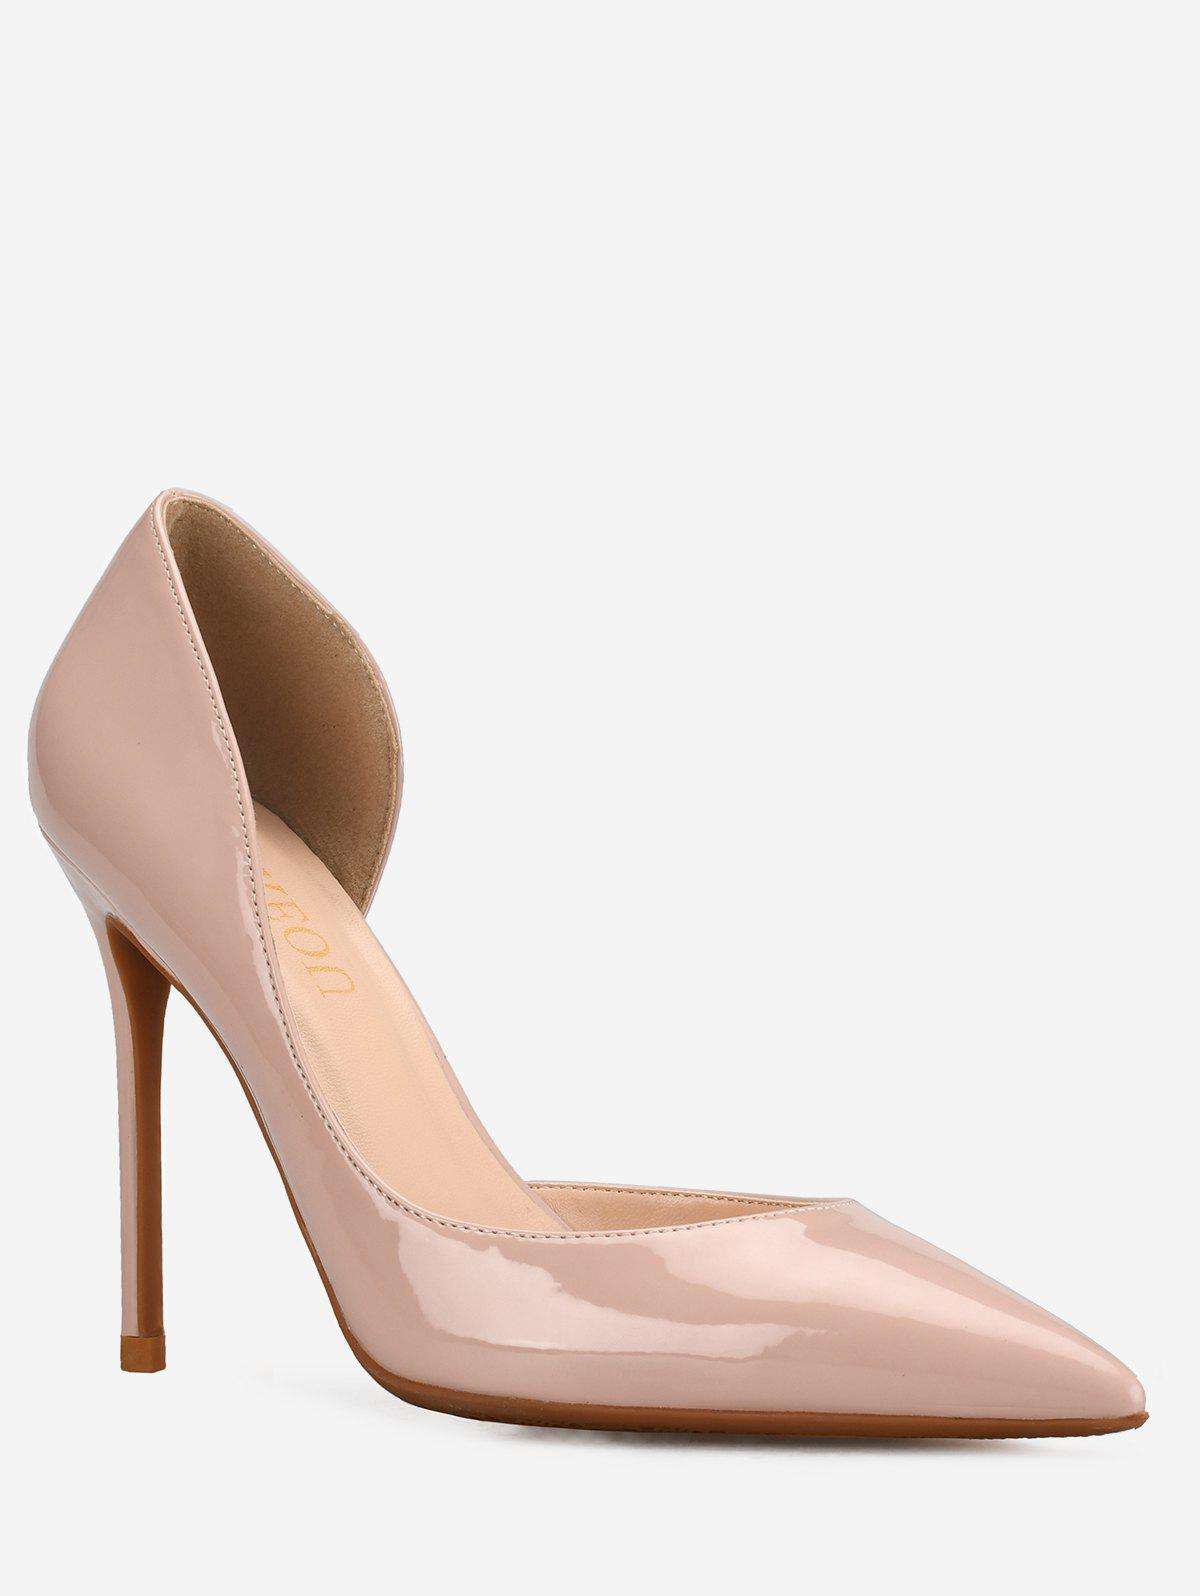 Sale GOXEOU High Heel Chic Party Pointed Toe Pumps